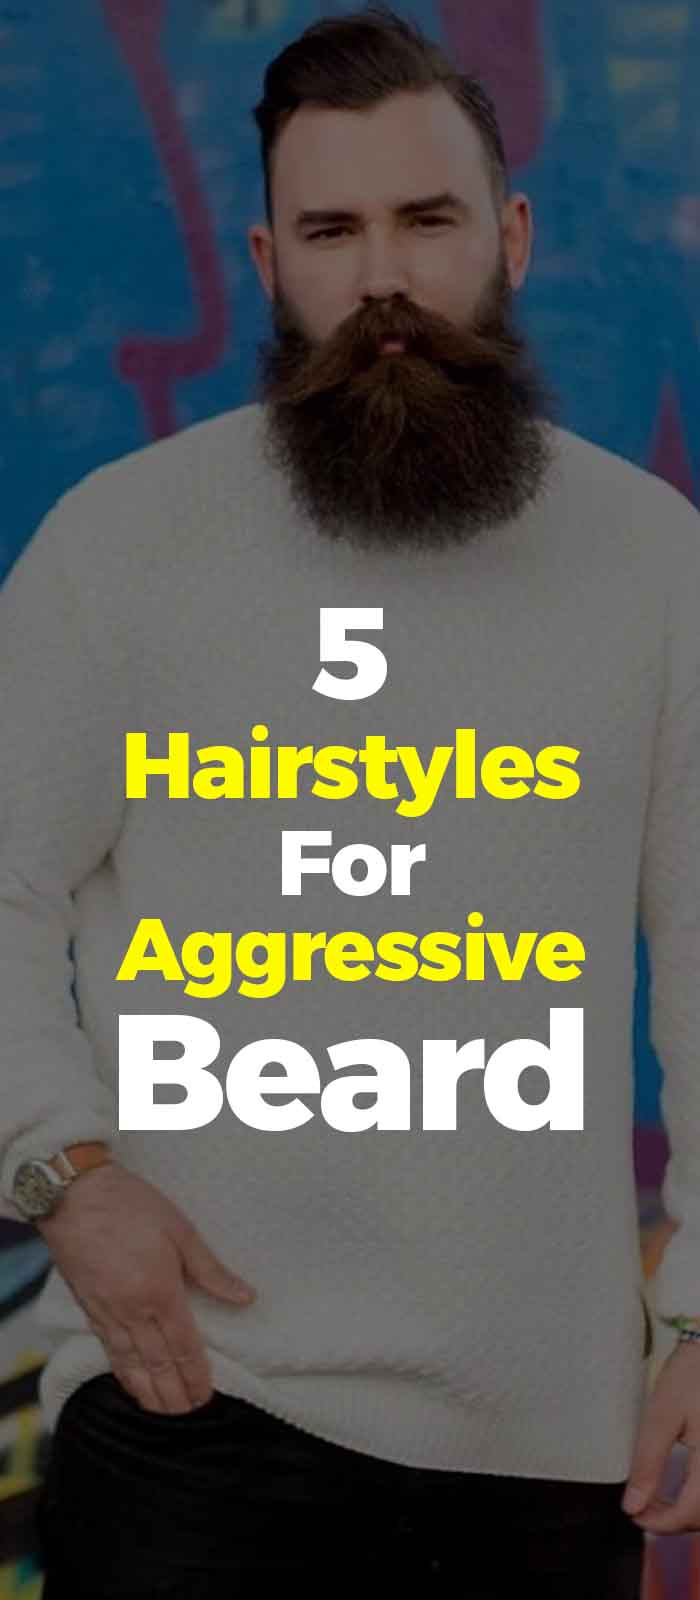 Aggressive Beard with short hairstyles for men!